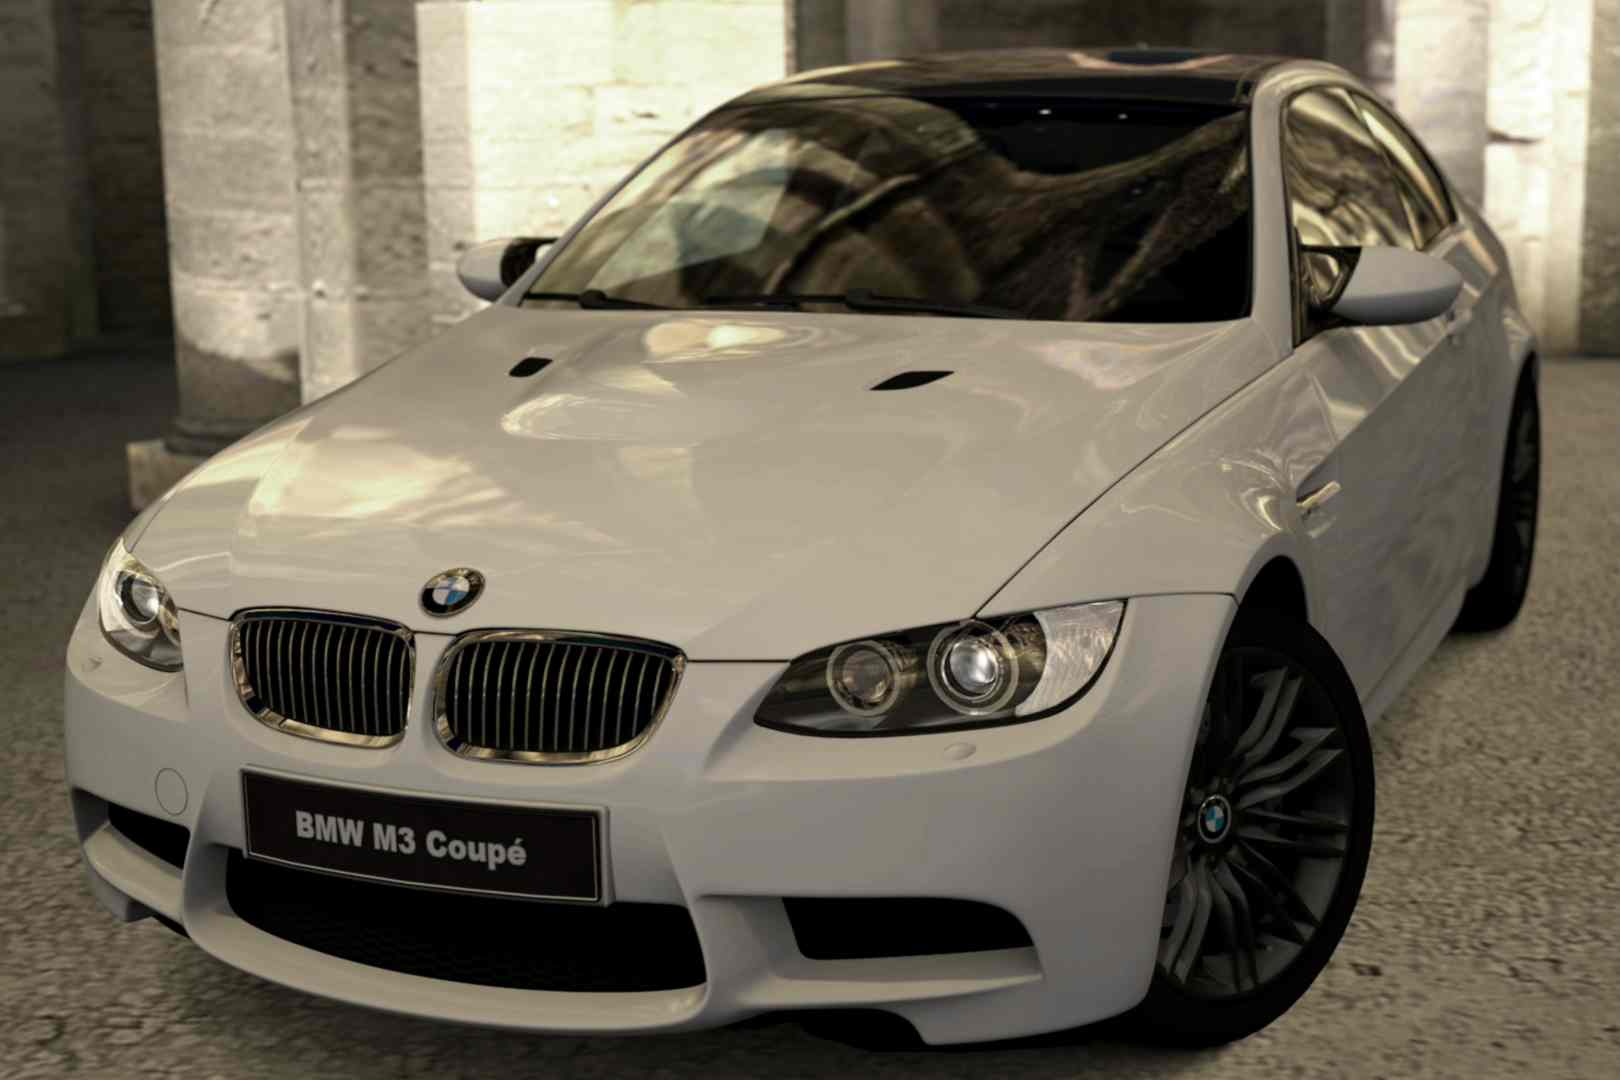 A stock white BMW M3 coupe.